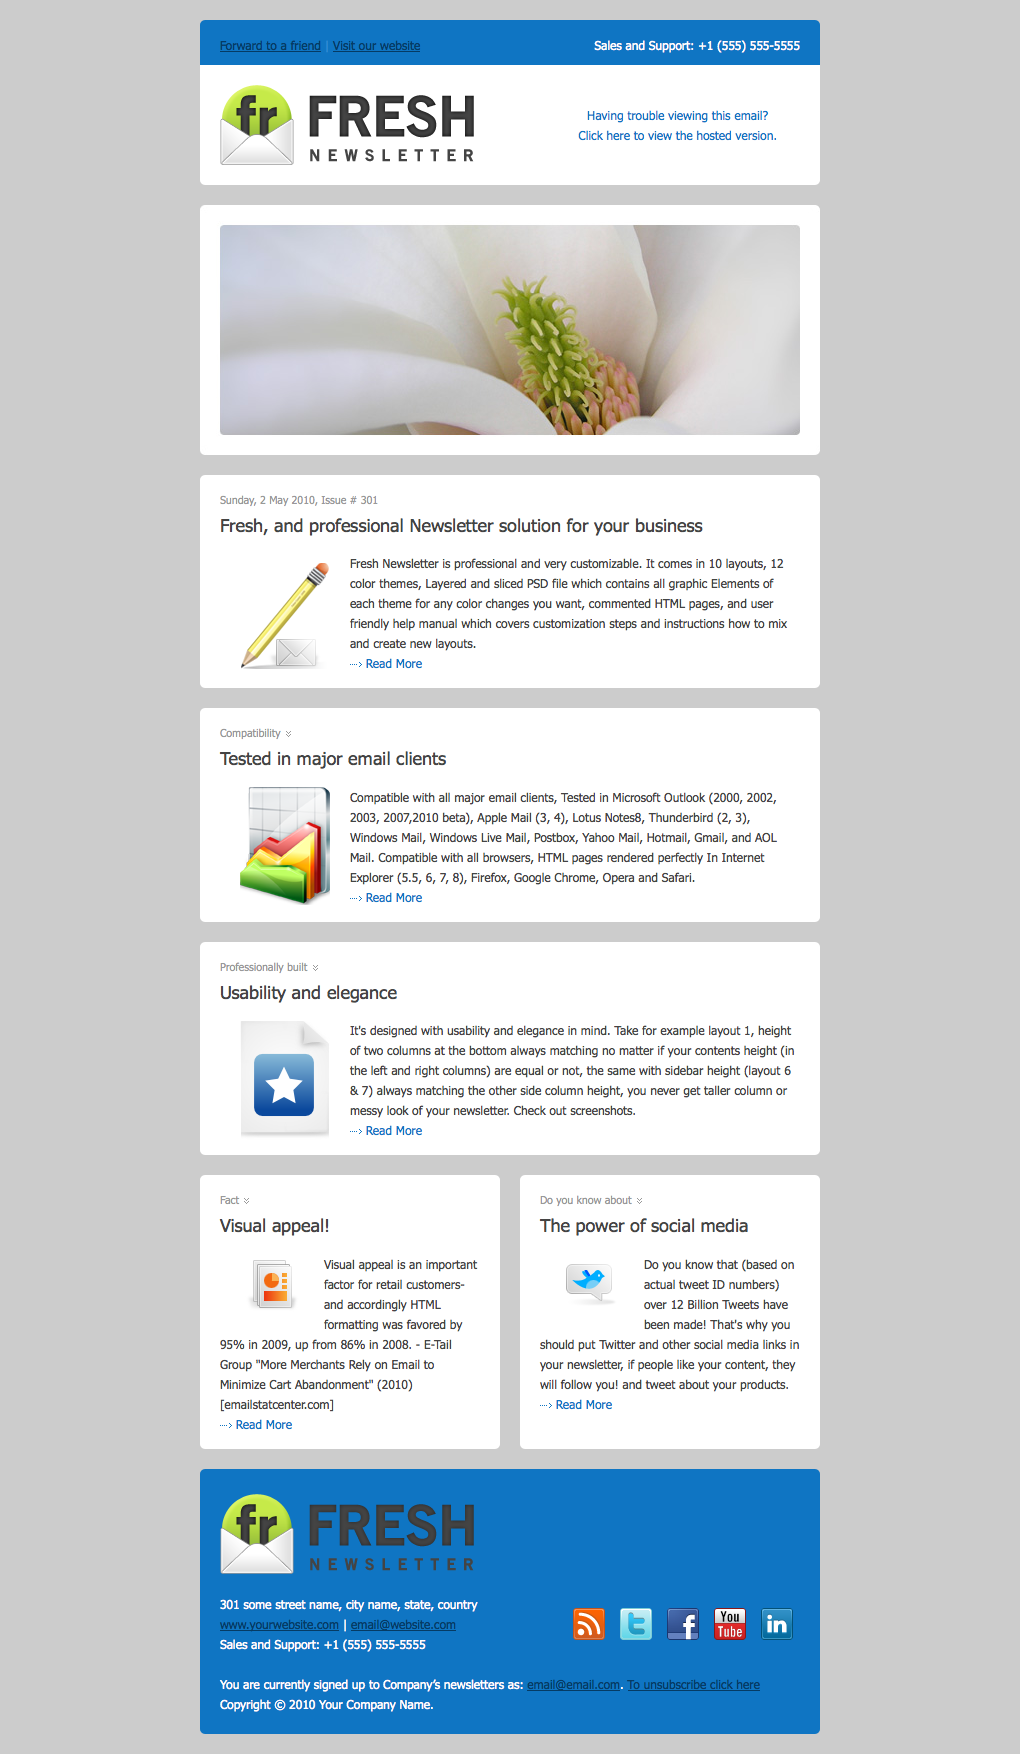 Email Newsletter Design Google Search 160506